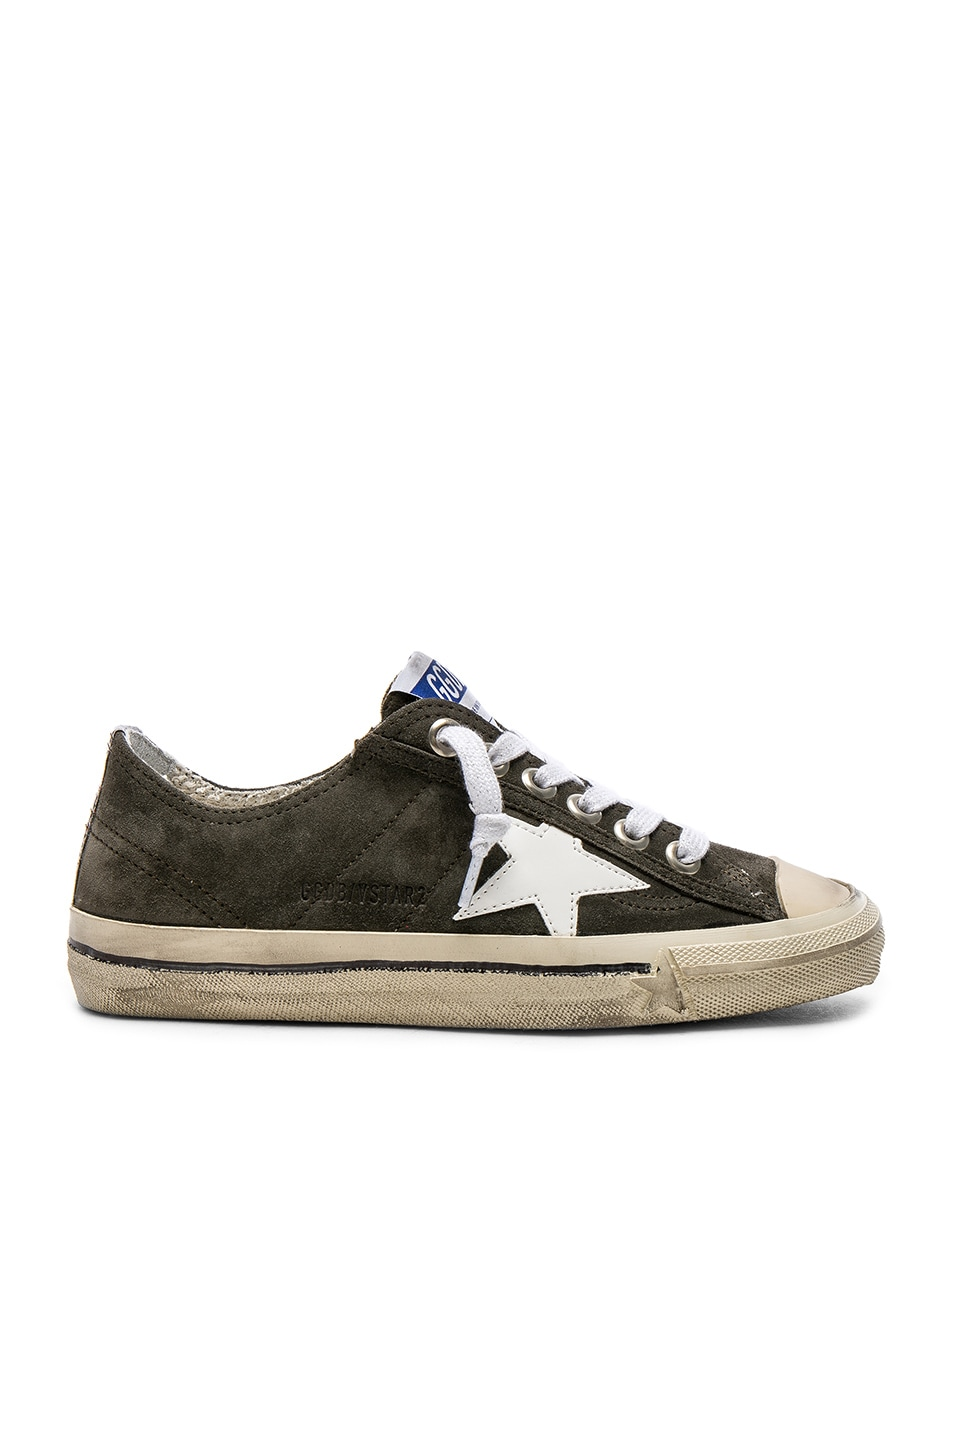 Image 1 of Golden Goose Suede V Star 2 Sneakers in Military Green   White  Patent d2aed544cf6d